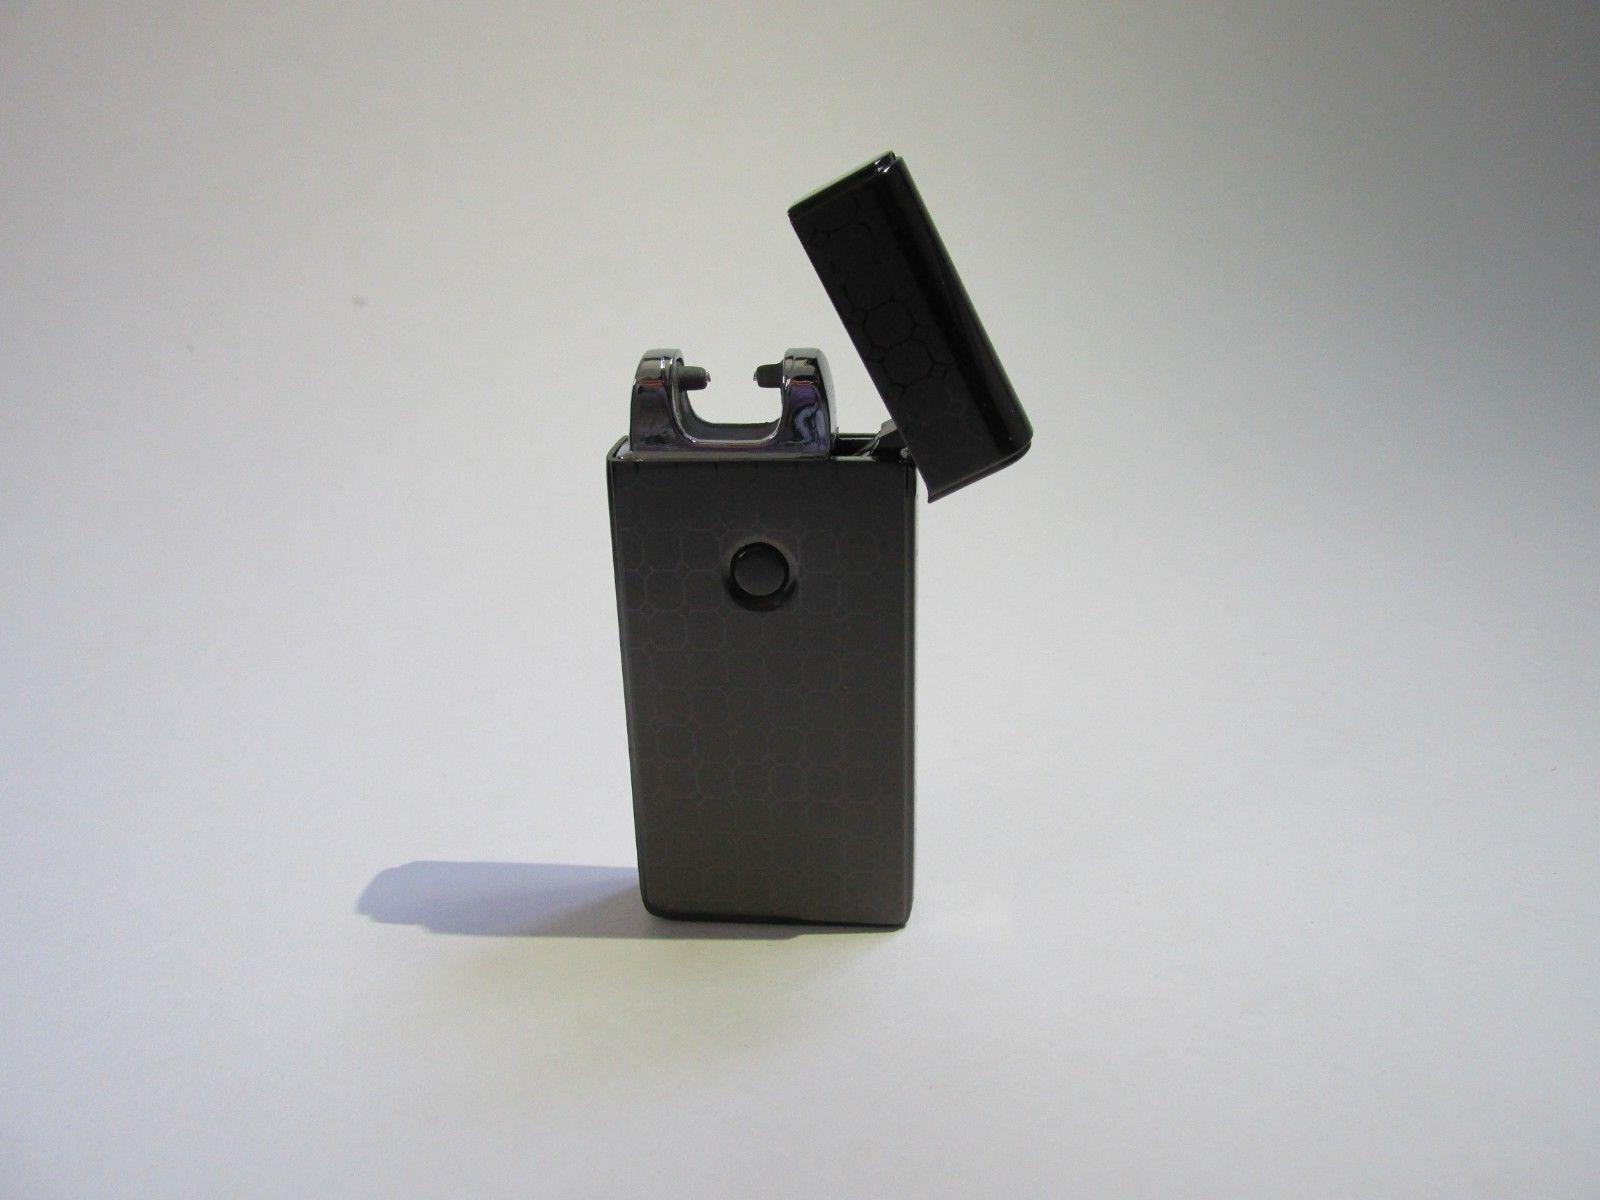 Rechargeable Saberlight Plasma Beam Flameless Lighter with C